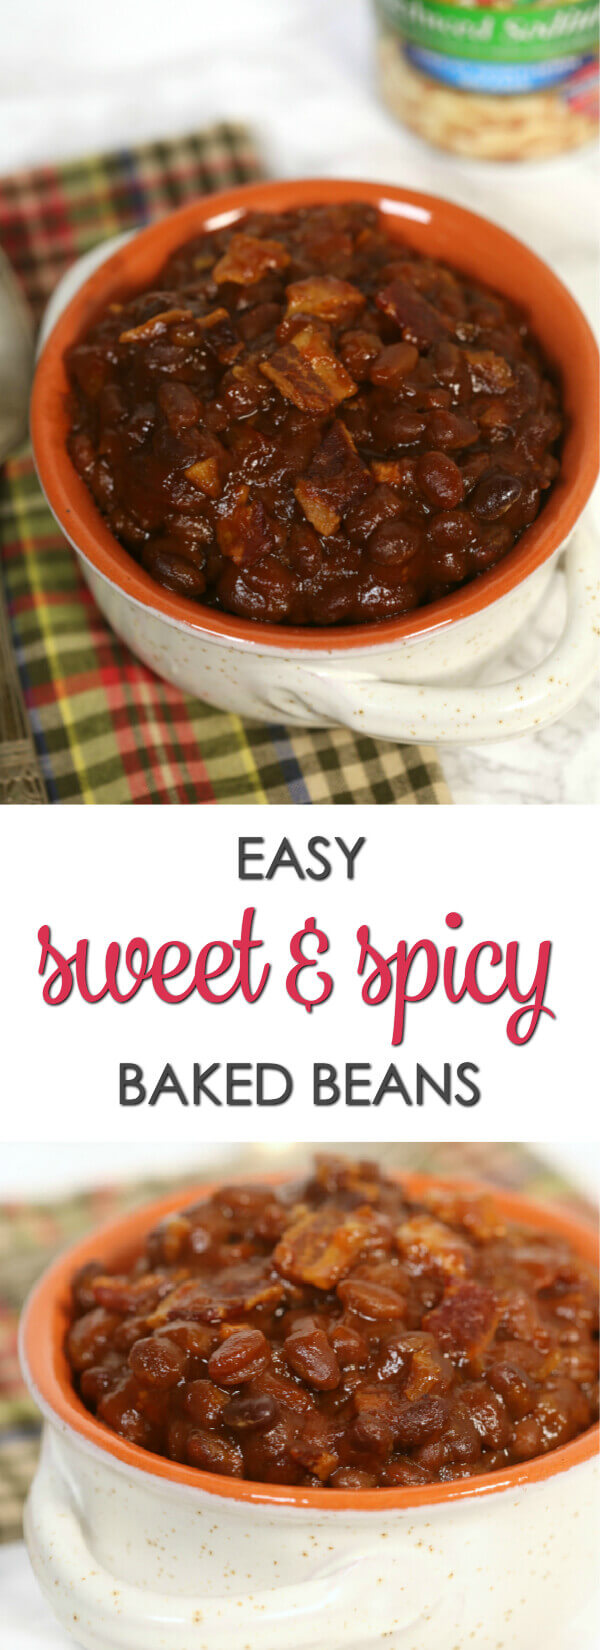 Sweet and Spicy Baked Beans - this easy recipe is perfect for cookouts or game day